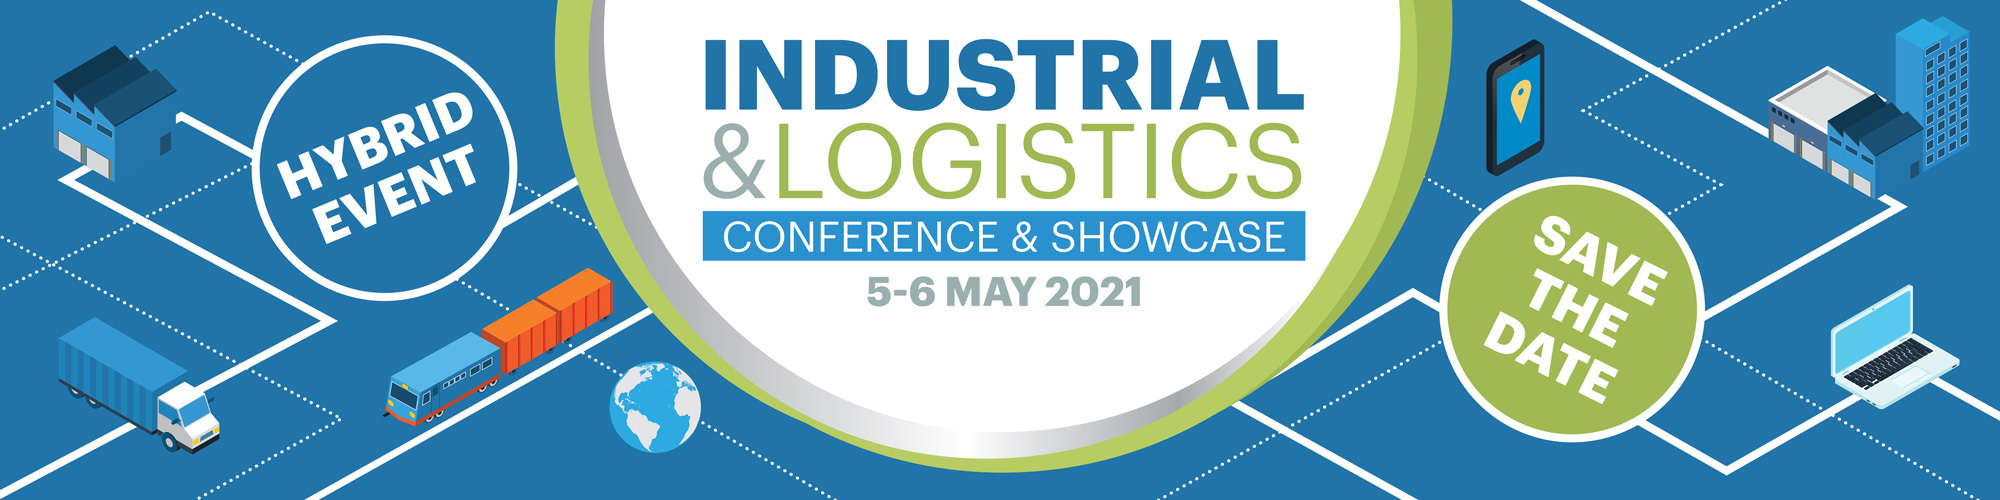 Industrial & Logistics Conference & Showcase